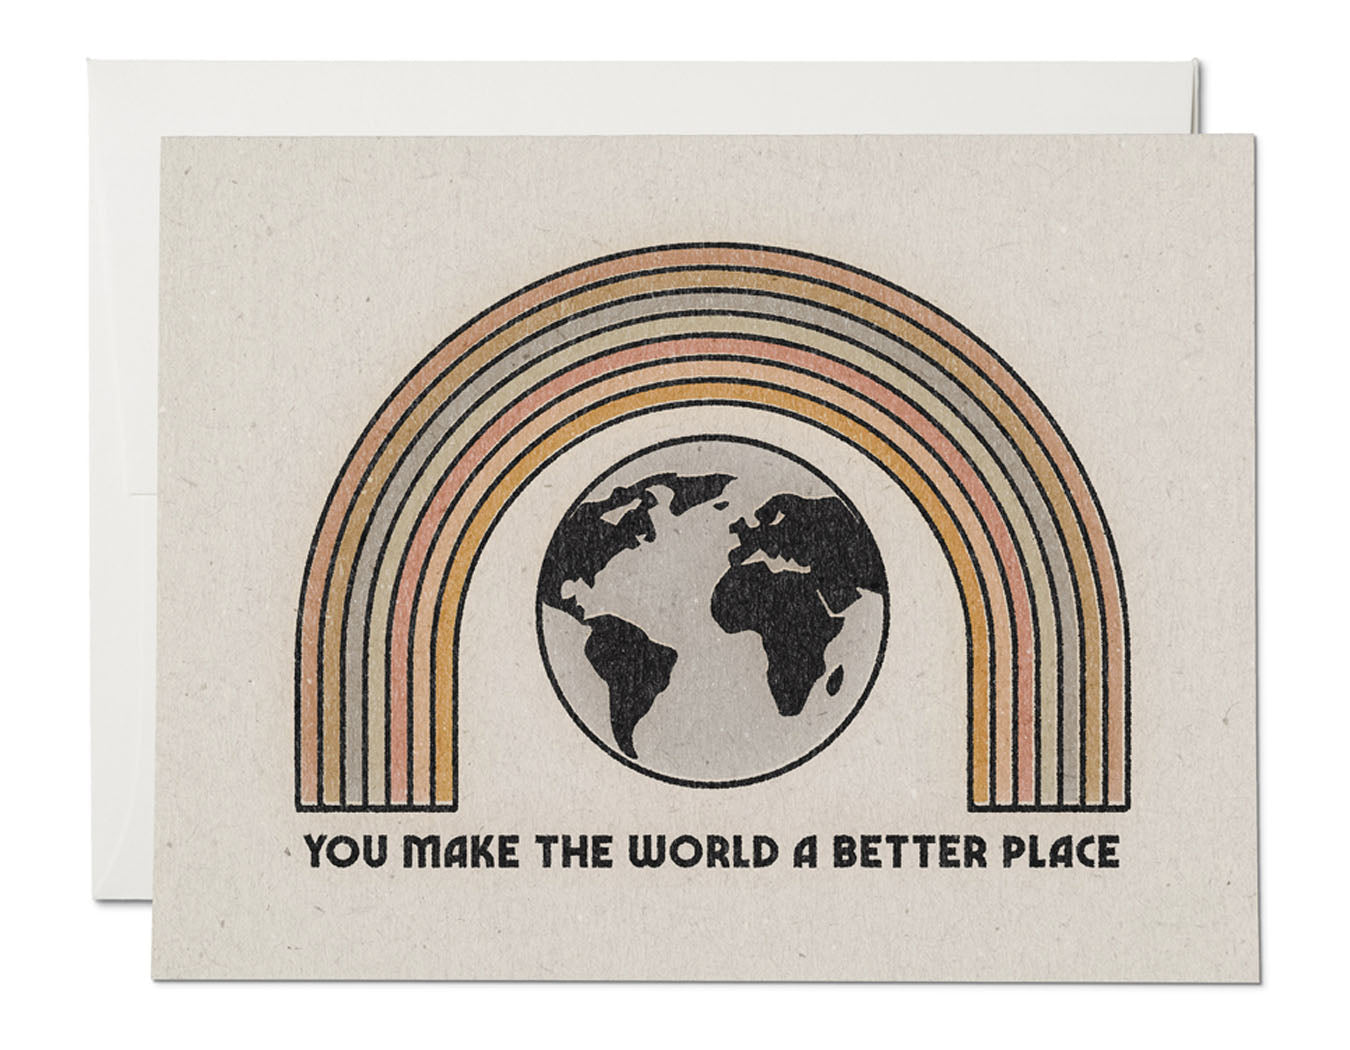 BEAUTIFUL MUTED COLORS OF A RAINBOW WITH A WORLD ILLUSTRATION TEXT READS YOU MAKE THE WORLD A BETTER PLACE